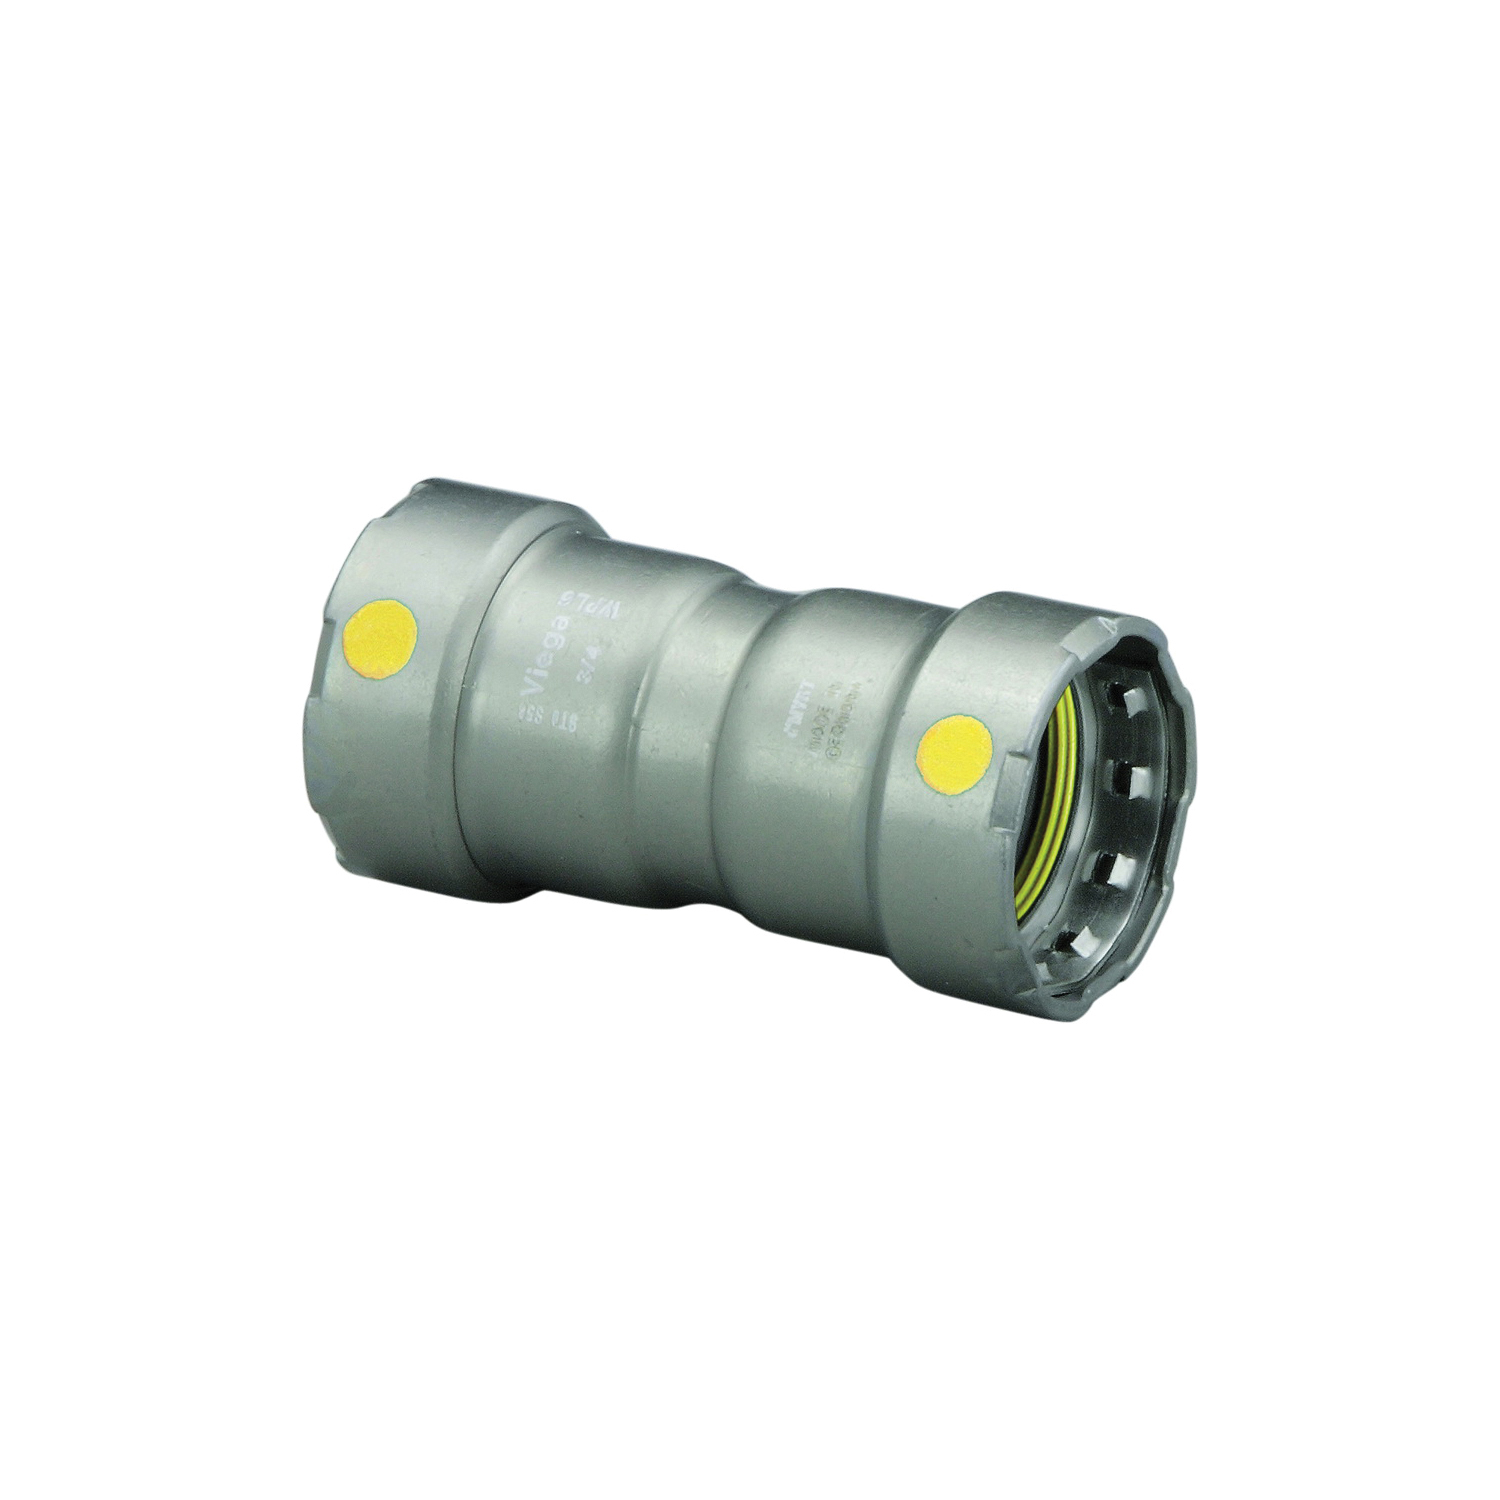 MegaPress®G 25011 Pipe Coupling With Stop, 1 in, Press